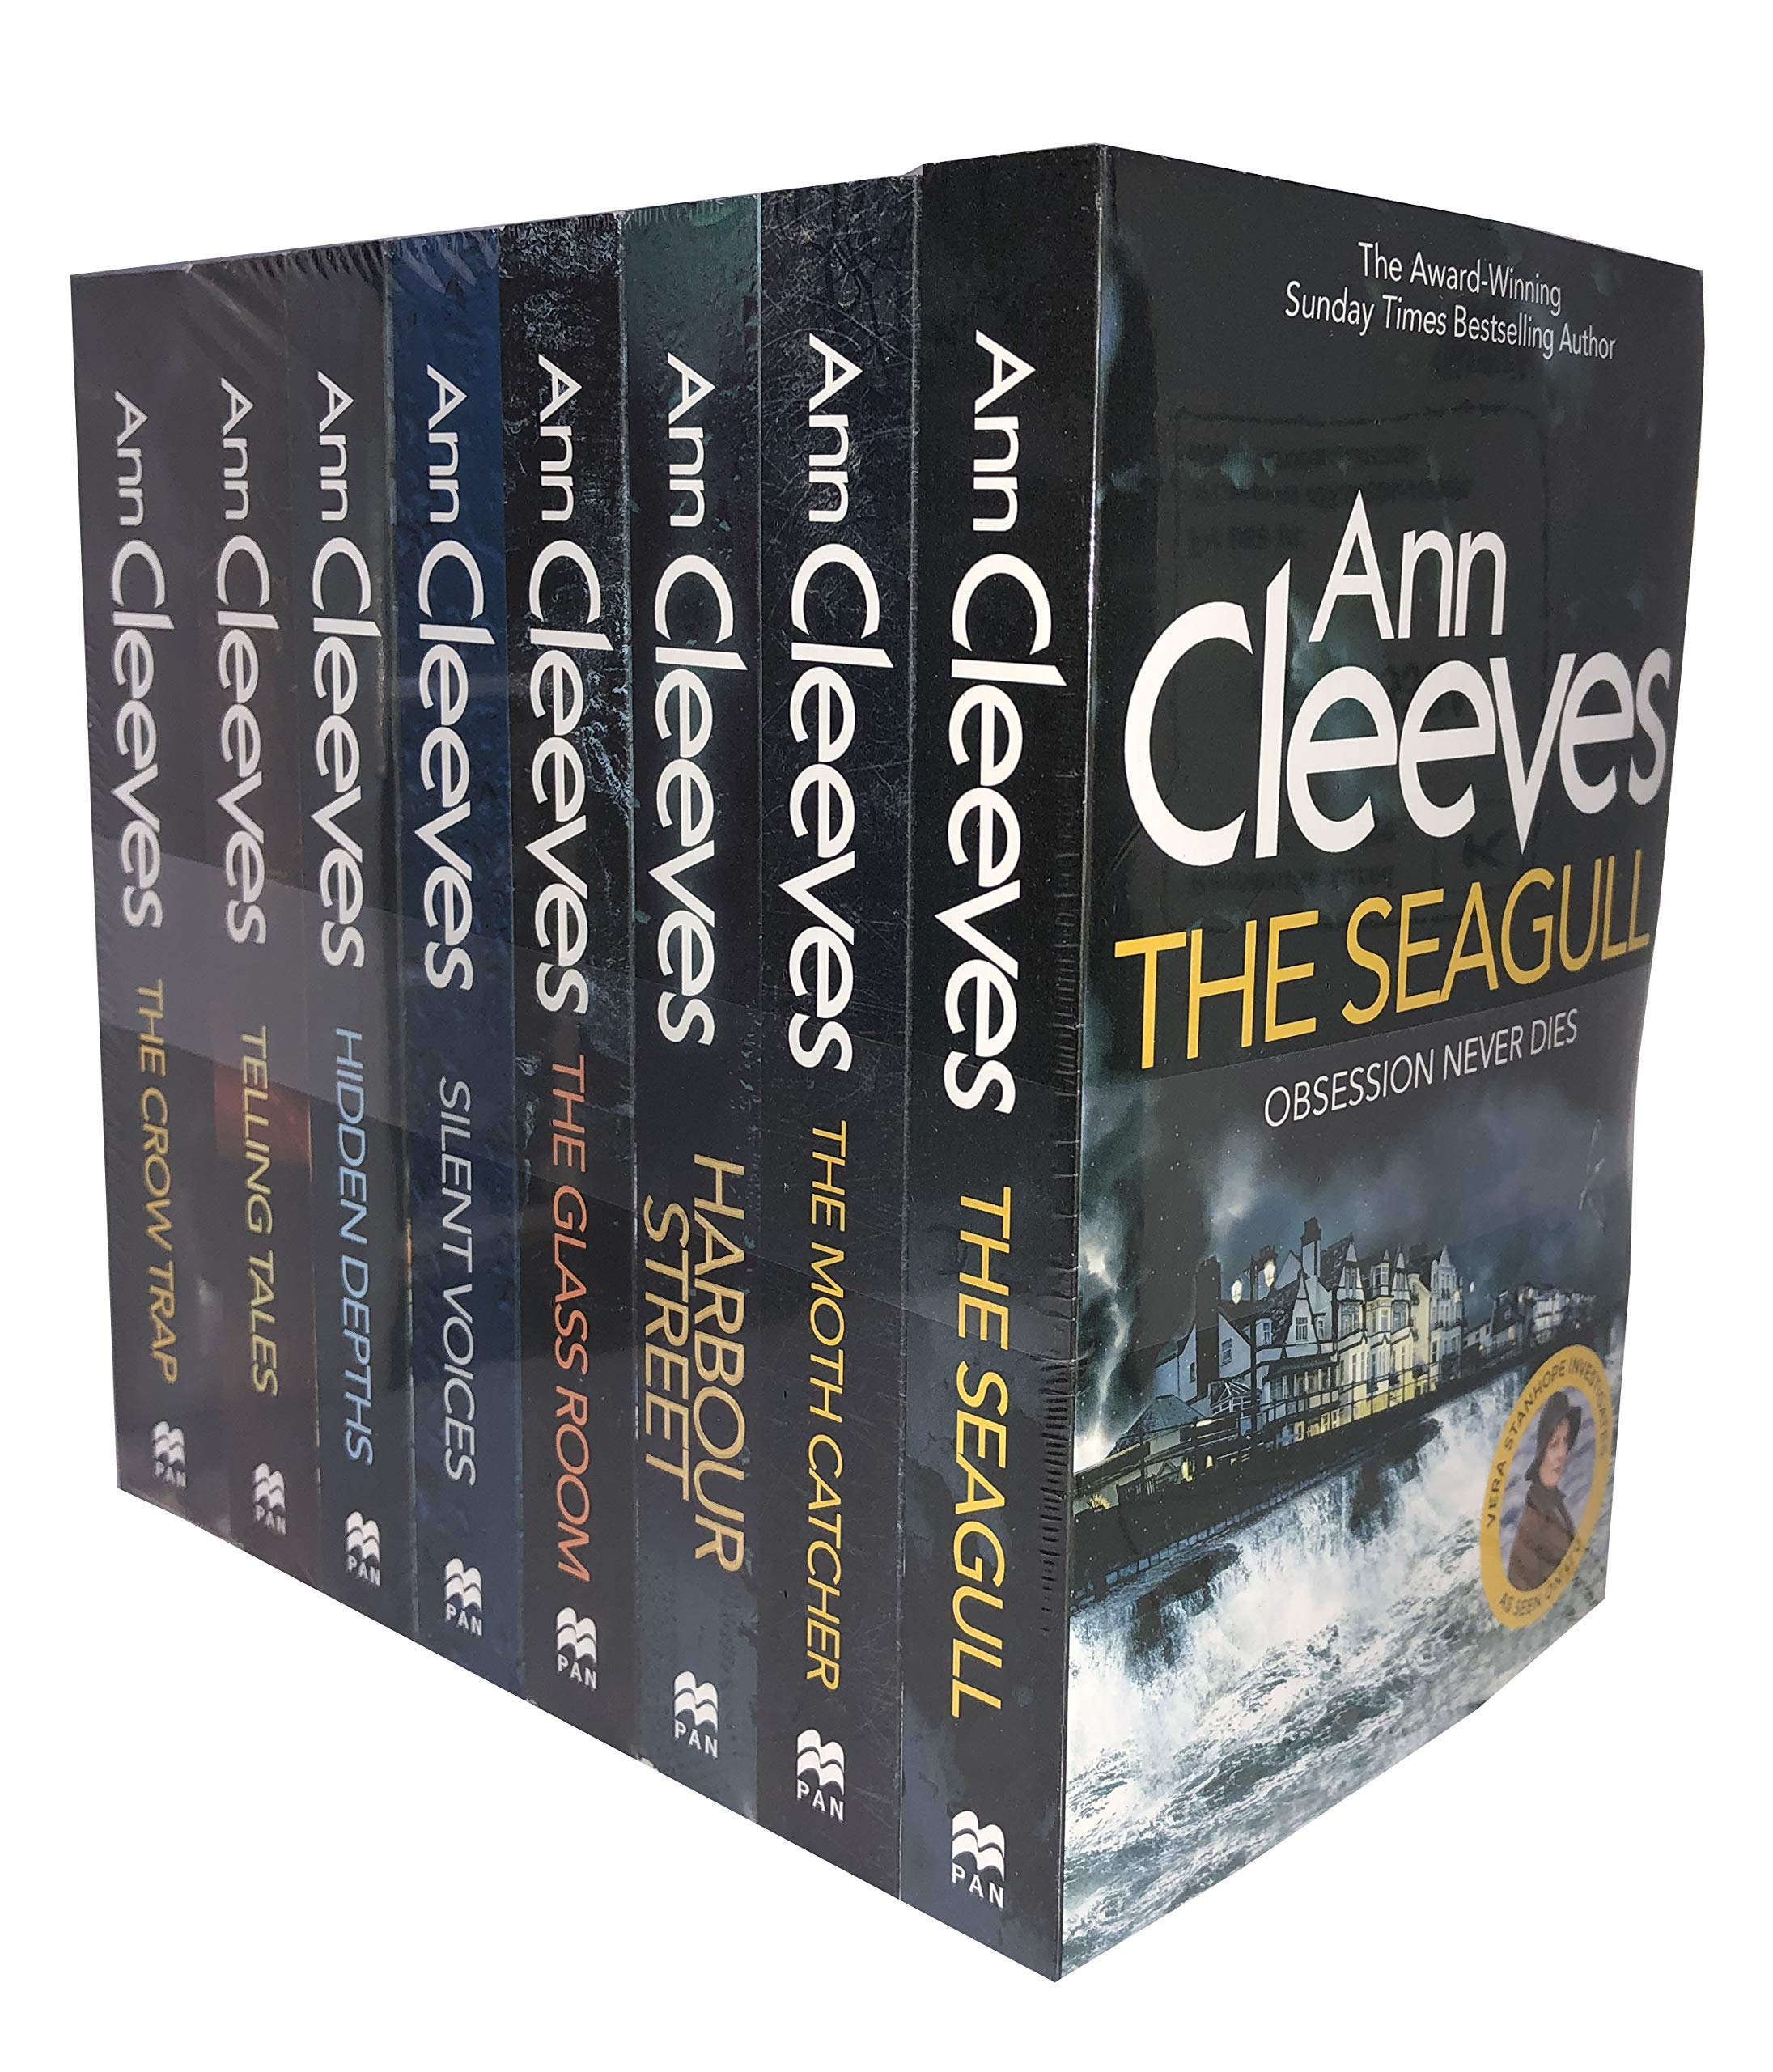 Ann Cleeves TV Vera Stanhope Series Collection 8 Books Set (Telling Tales, Harbour Street, Silent Voices, Hidden Depths, The Glass Room, The Seagull, The Moth Catcher) by Pan Macmillan